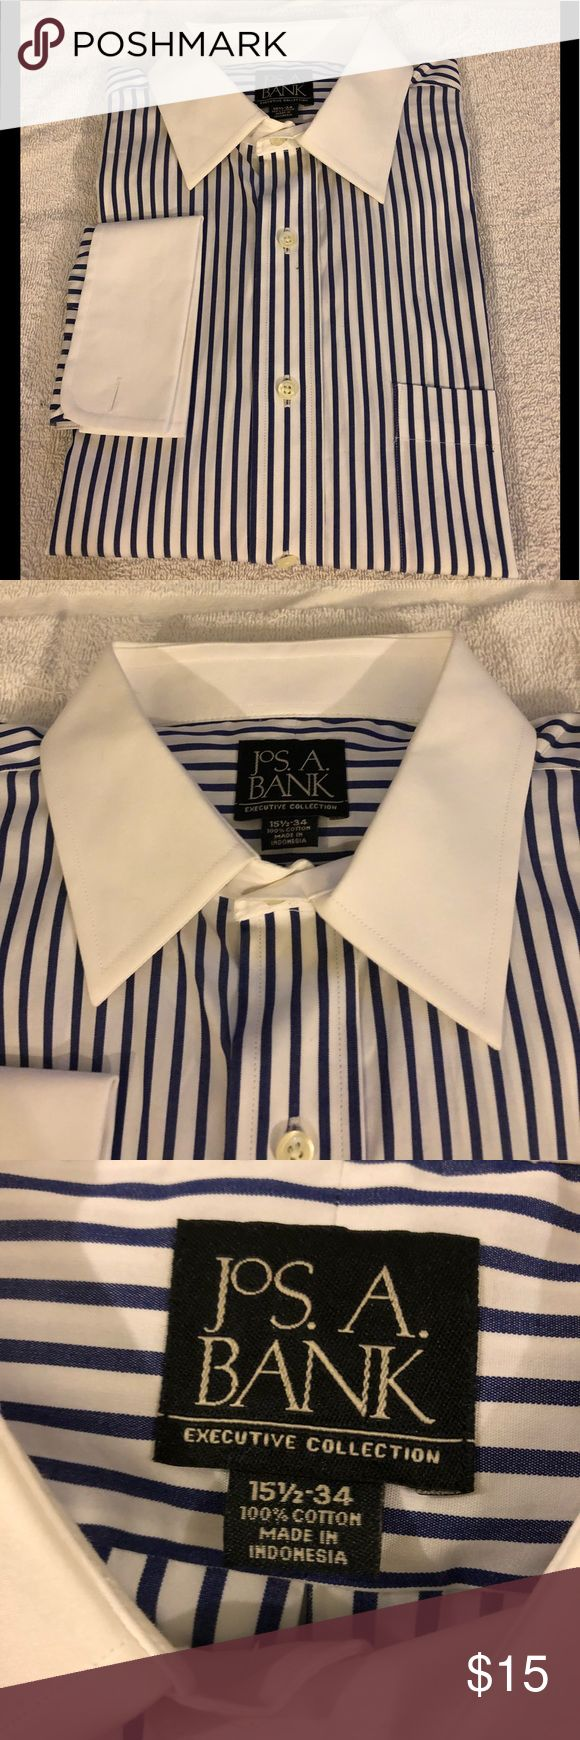 Jos A Bank White Stripe French Cuff Shirt 15.5-34 Jos A Bank White with Navy Blue Stripe White Collar French Cuff Dress Shirt size 15.5-34! Like new!  Please make reasonable offers and bundle! Ask questions :) Jos. A. Bank Shirts Dress Shirts